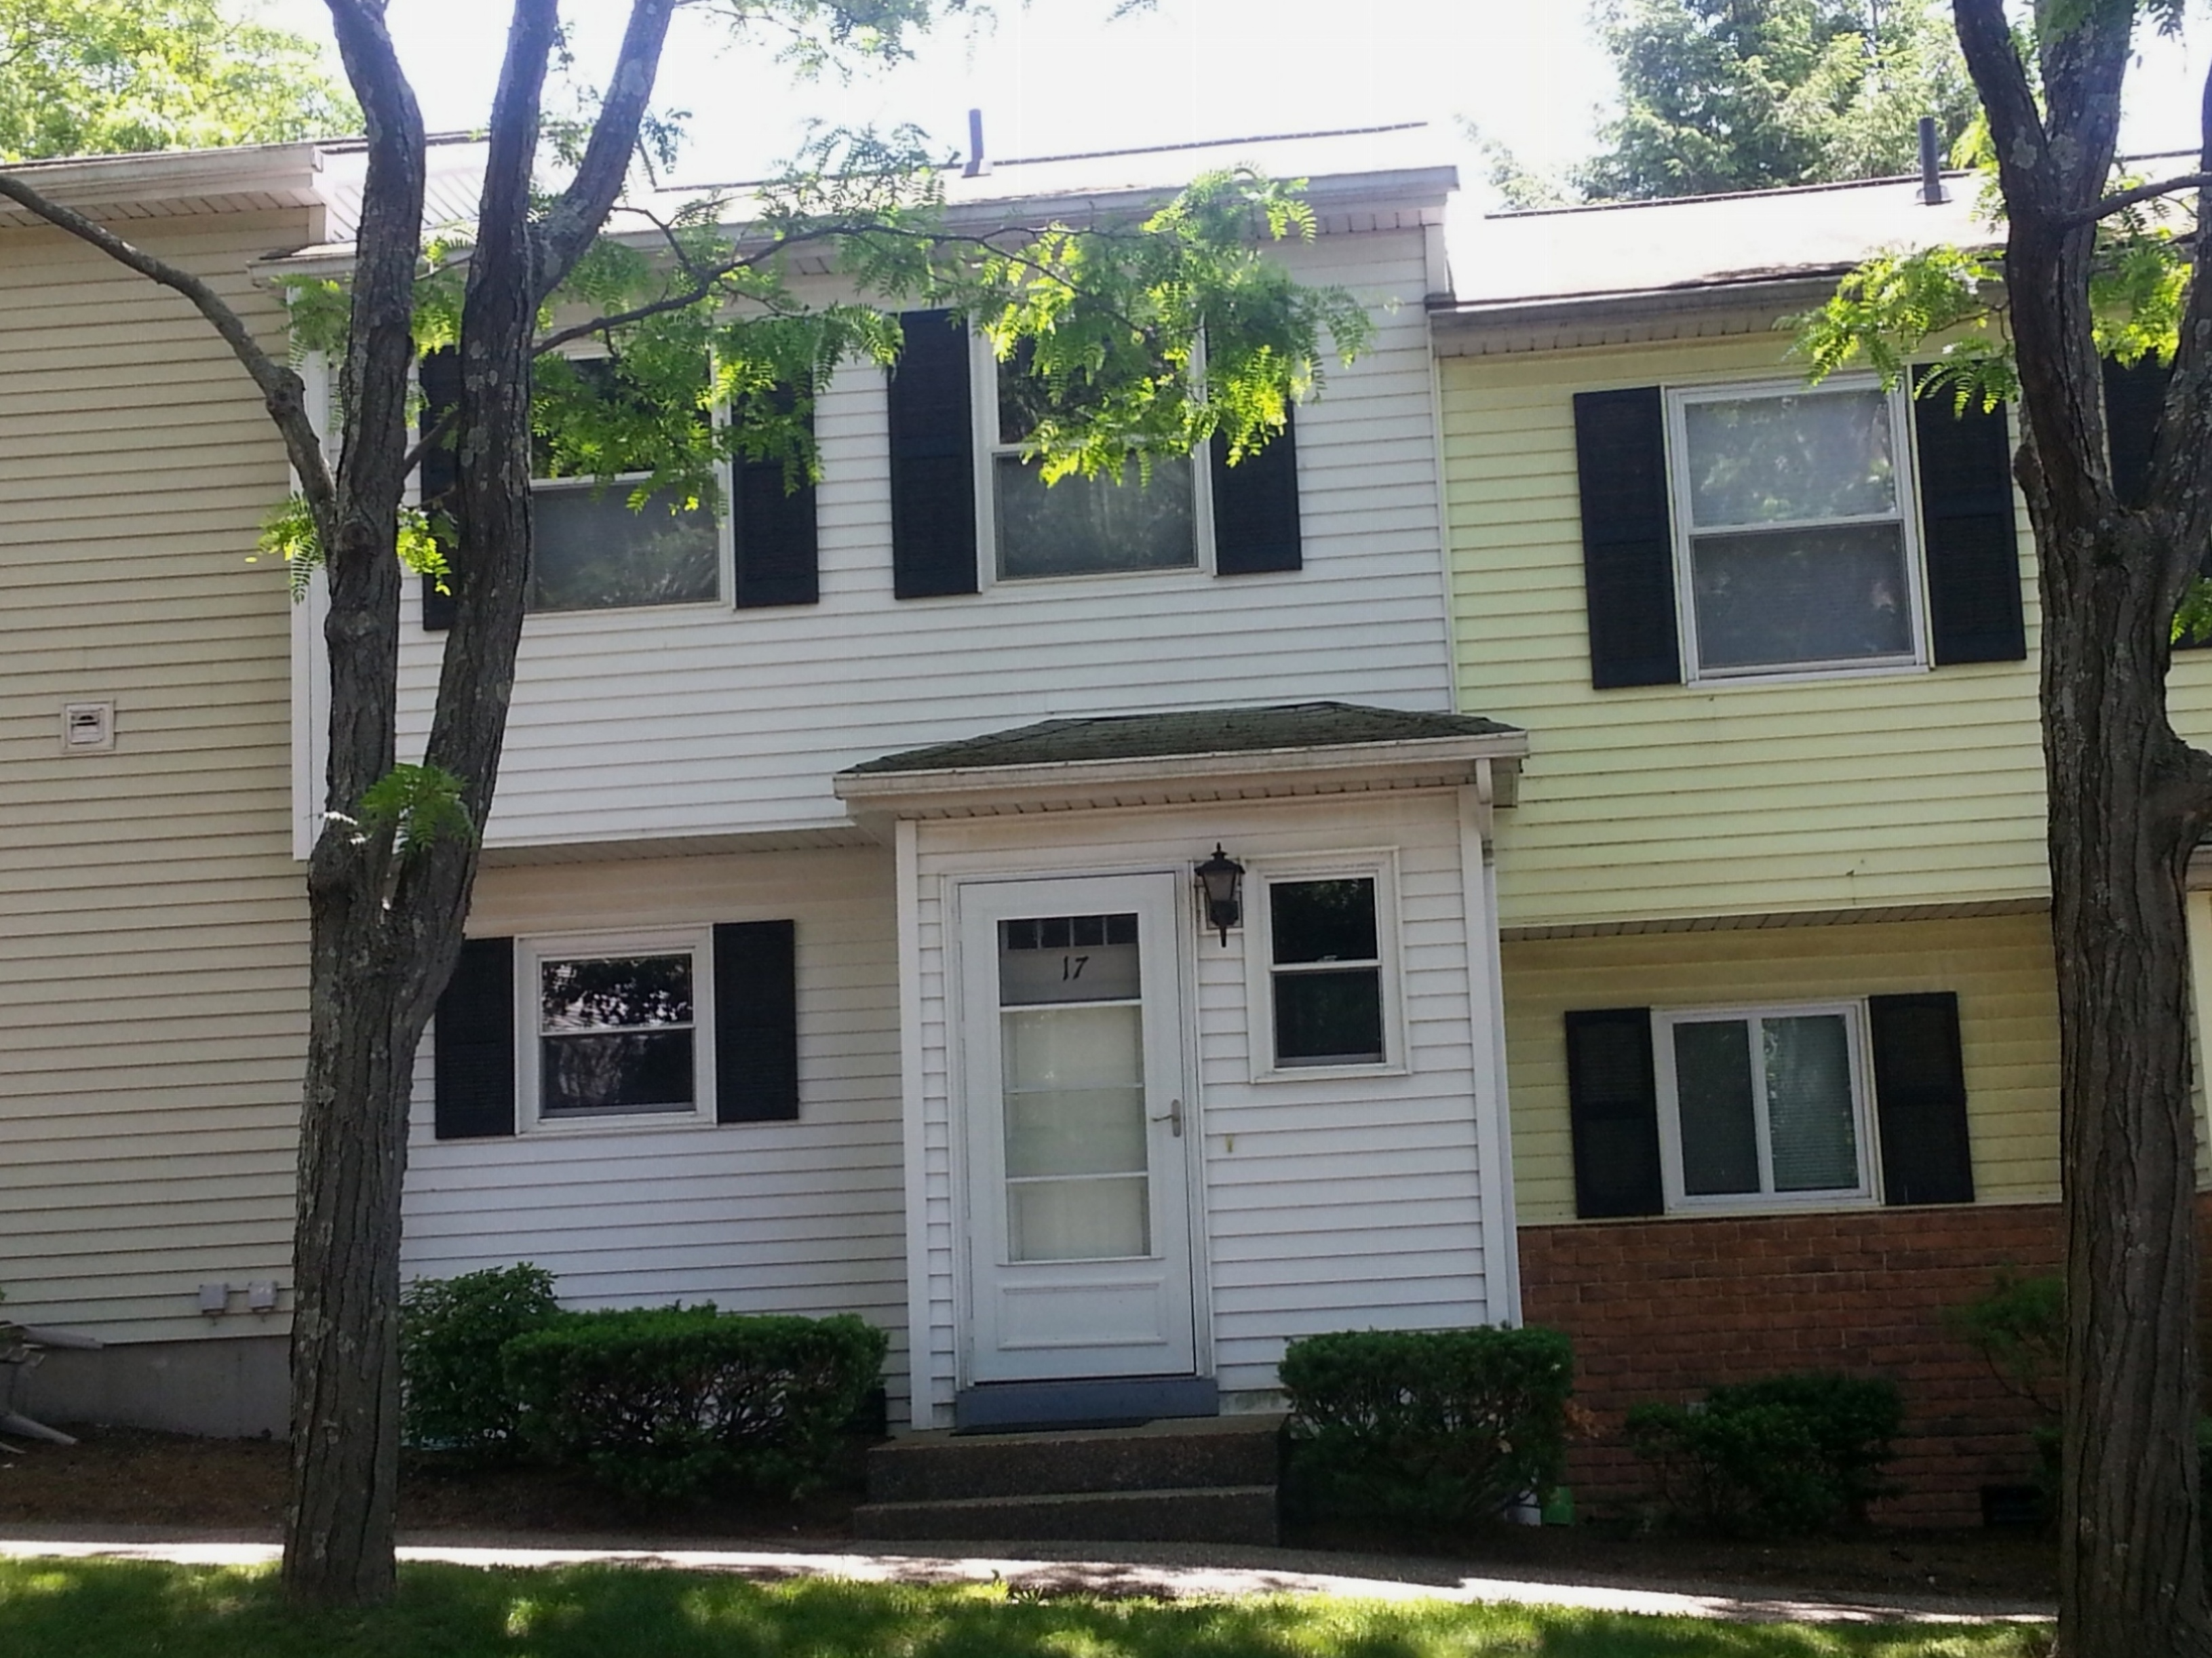 Villetta a schiera per Vendita alle ore Nicely Maintained Townhouse 25 Padanaram Road 17 Danbury, Connecticut, 06811 Stati Uniti